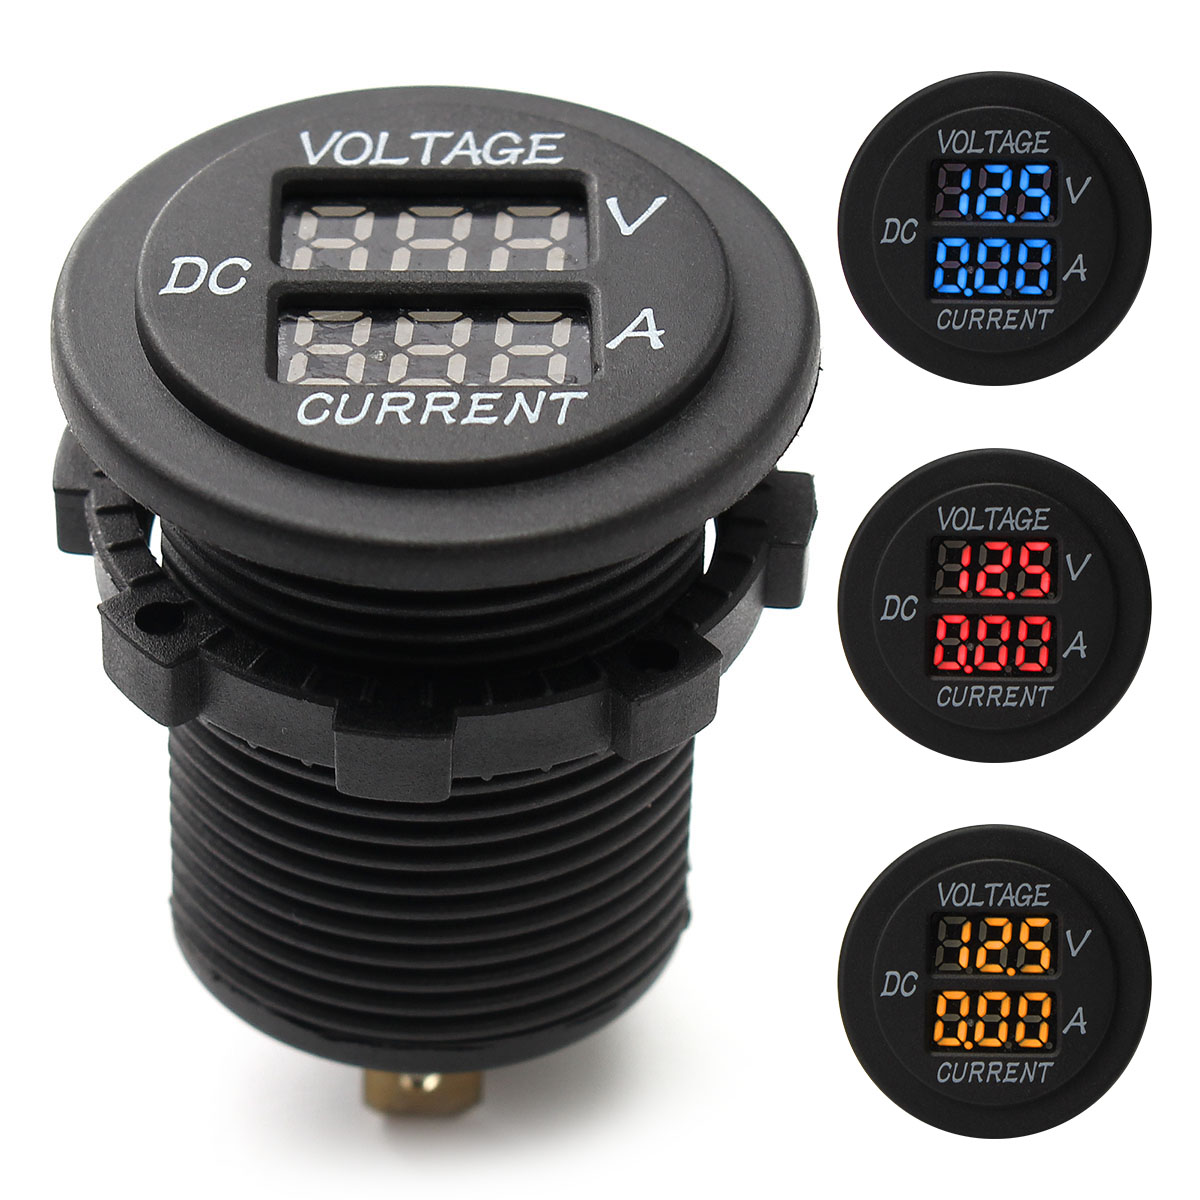 DC 12V 24V Car Voltmeter Ammeter LED Display Digital Voltage Met